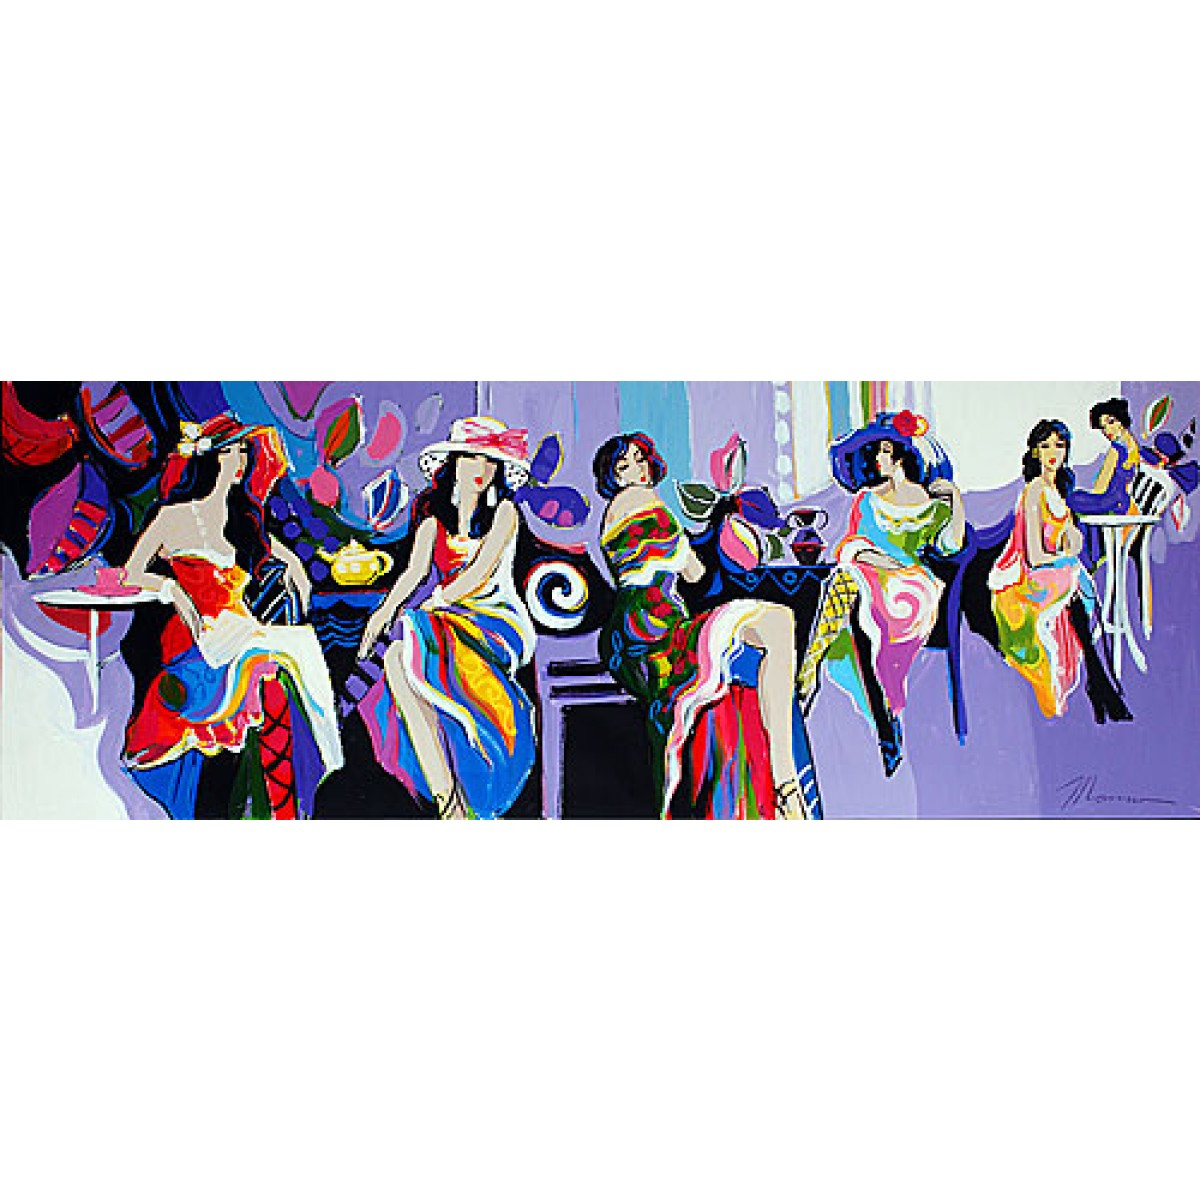 A Night Out by Isaac Maimon